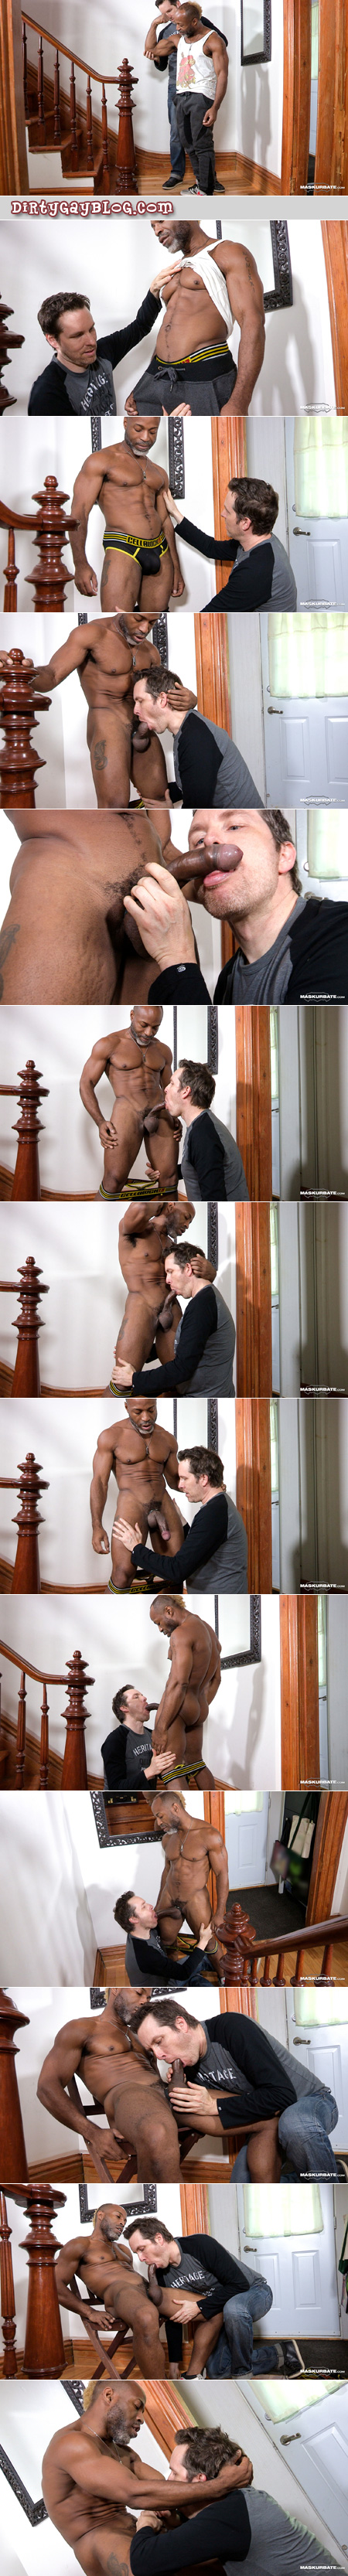 Hung black muscle Daddy getting his huge uncut cock sucked by another man.